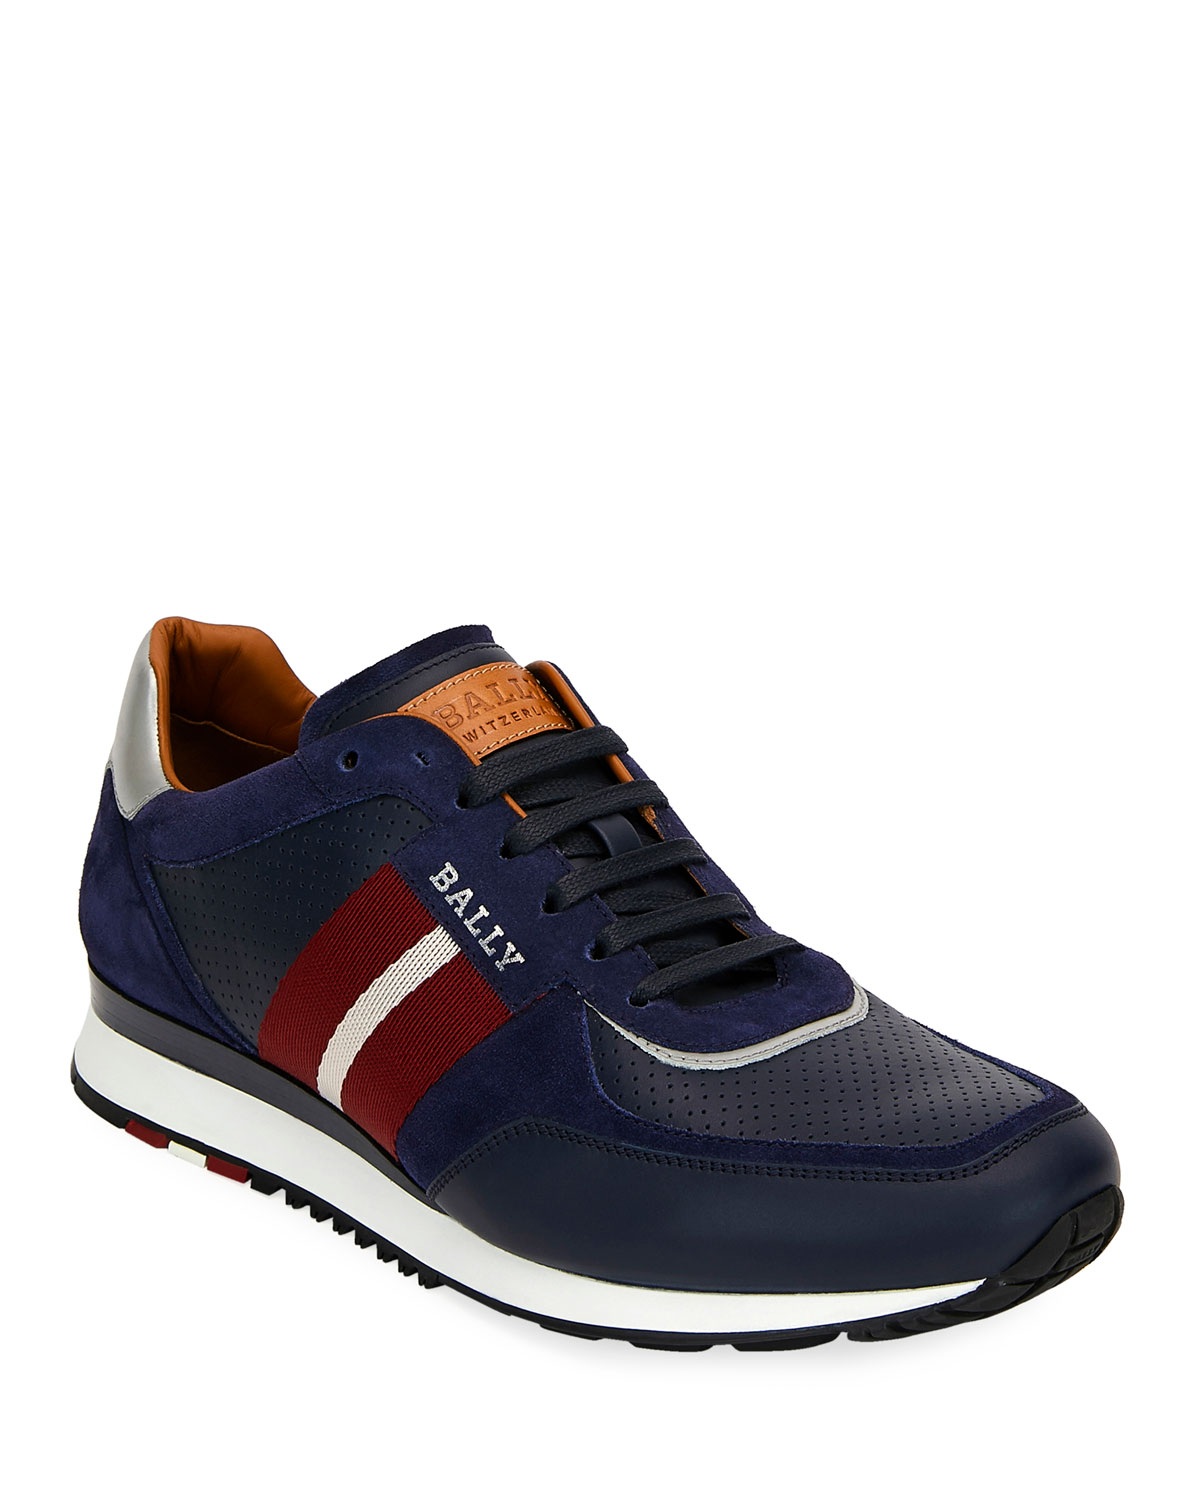 Aston Leather Runner Sneakers